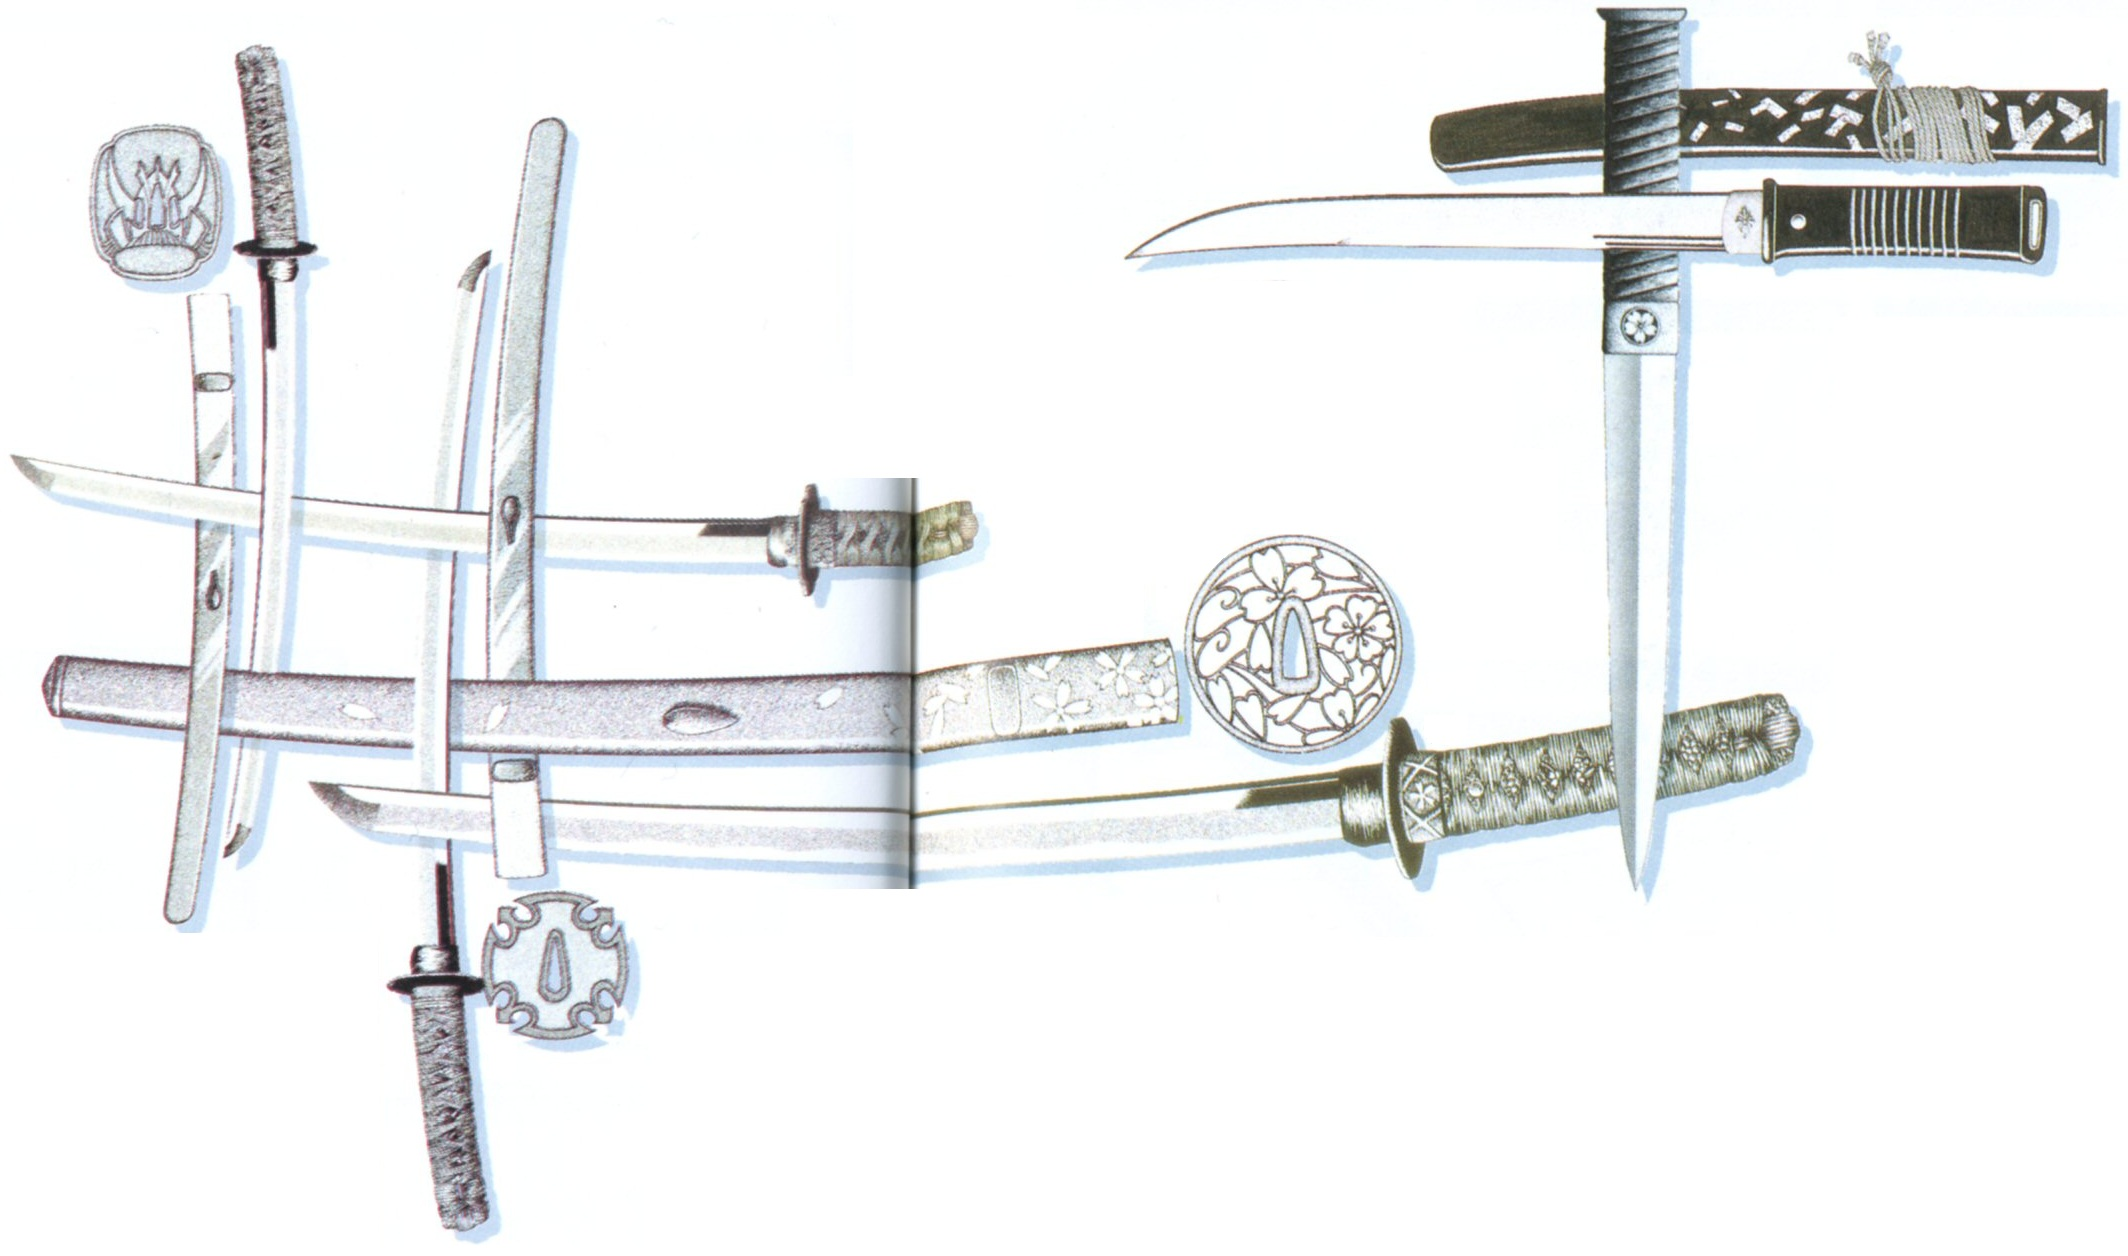 Types of bladed weapons: photo and names 55